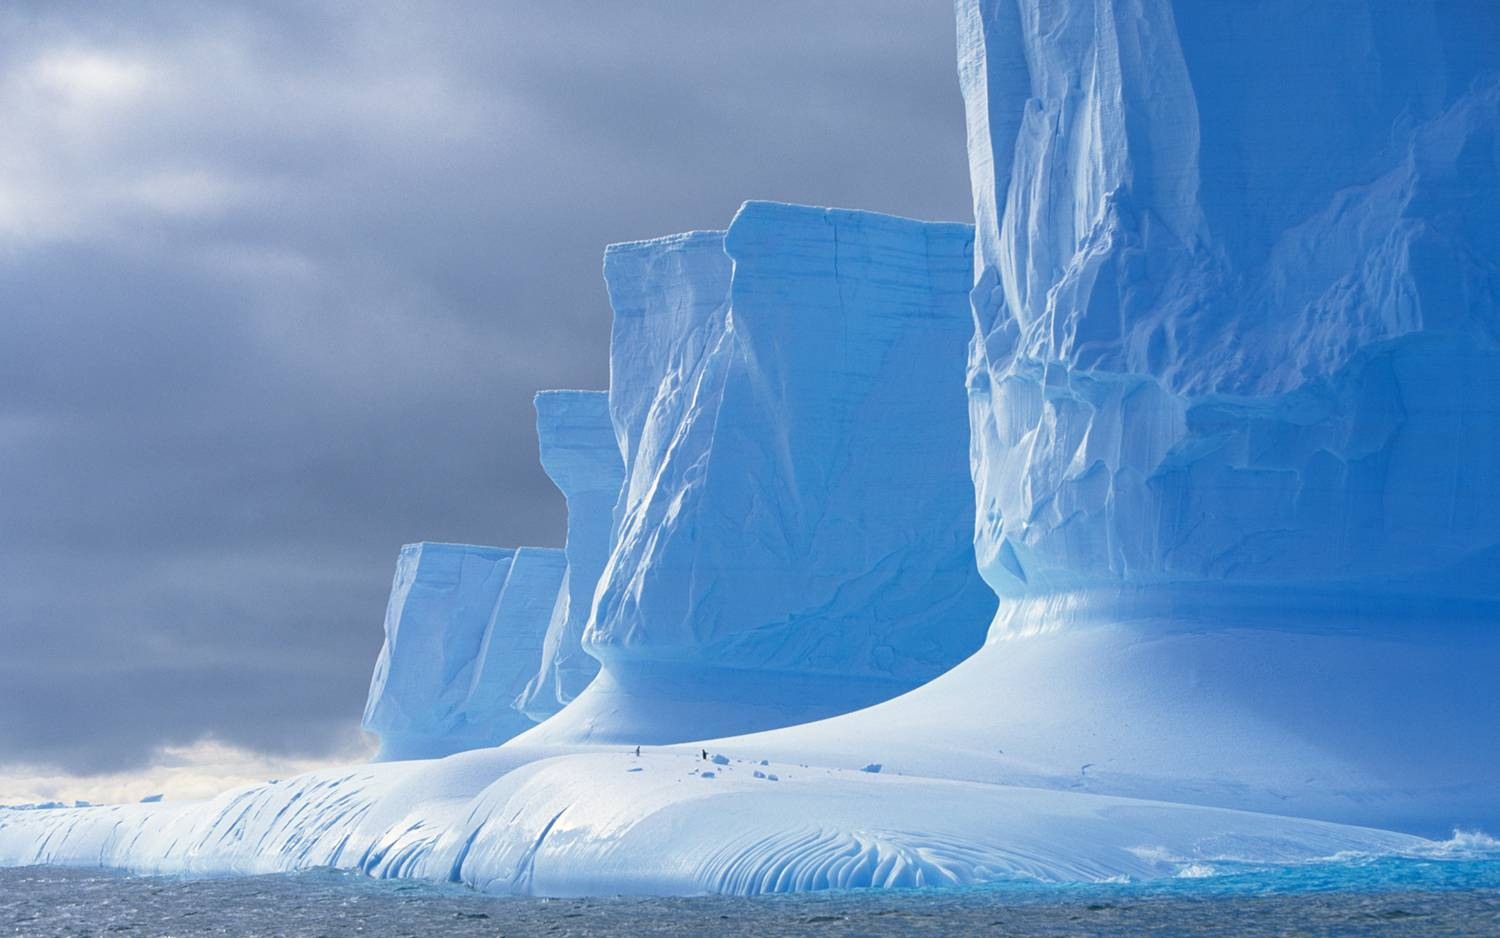 Antarctic Ice Wall Pleneau Bay